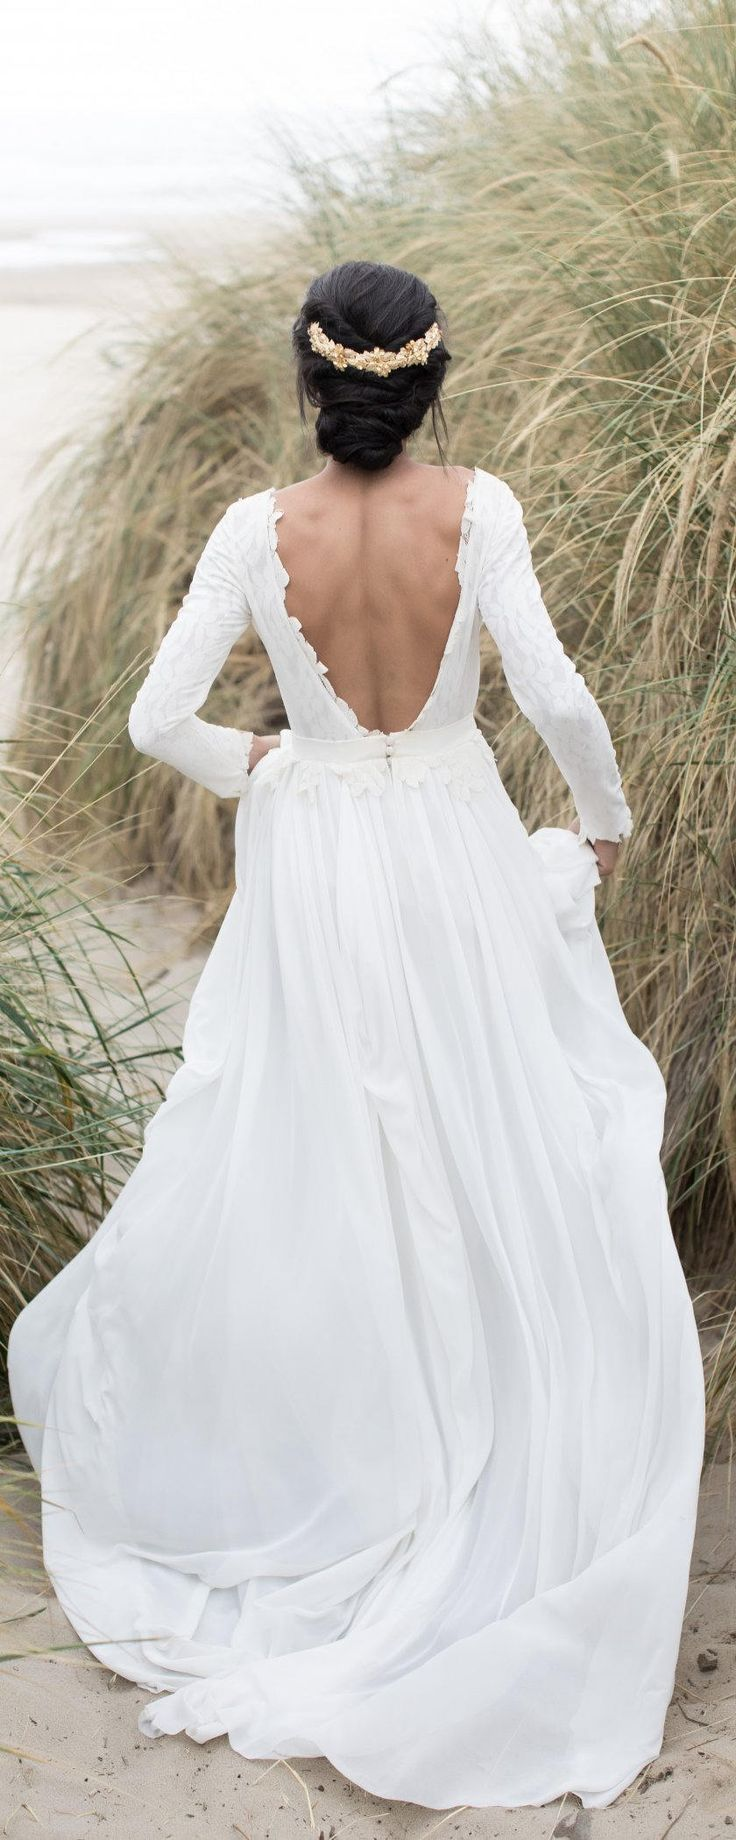 Long sleeve open back wedding dress with lace lining